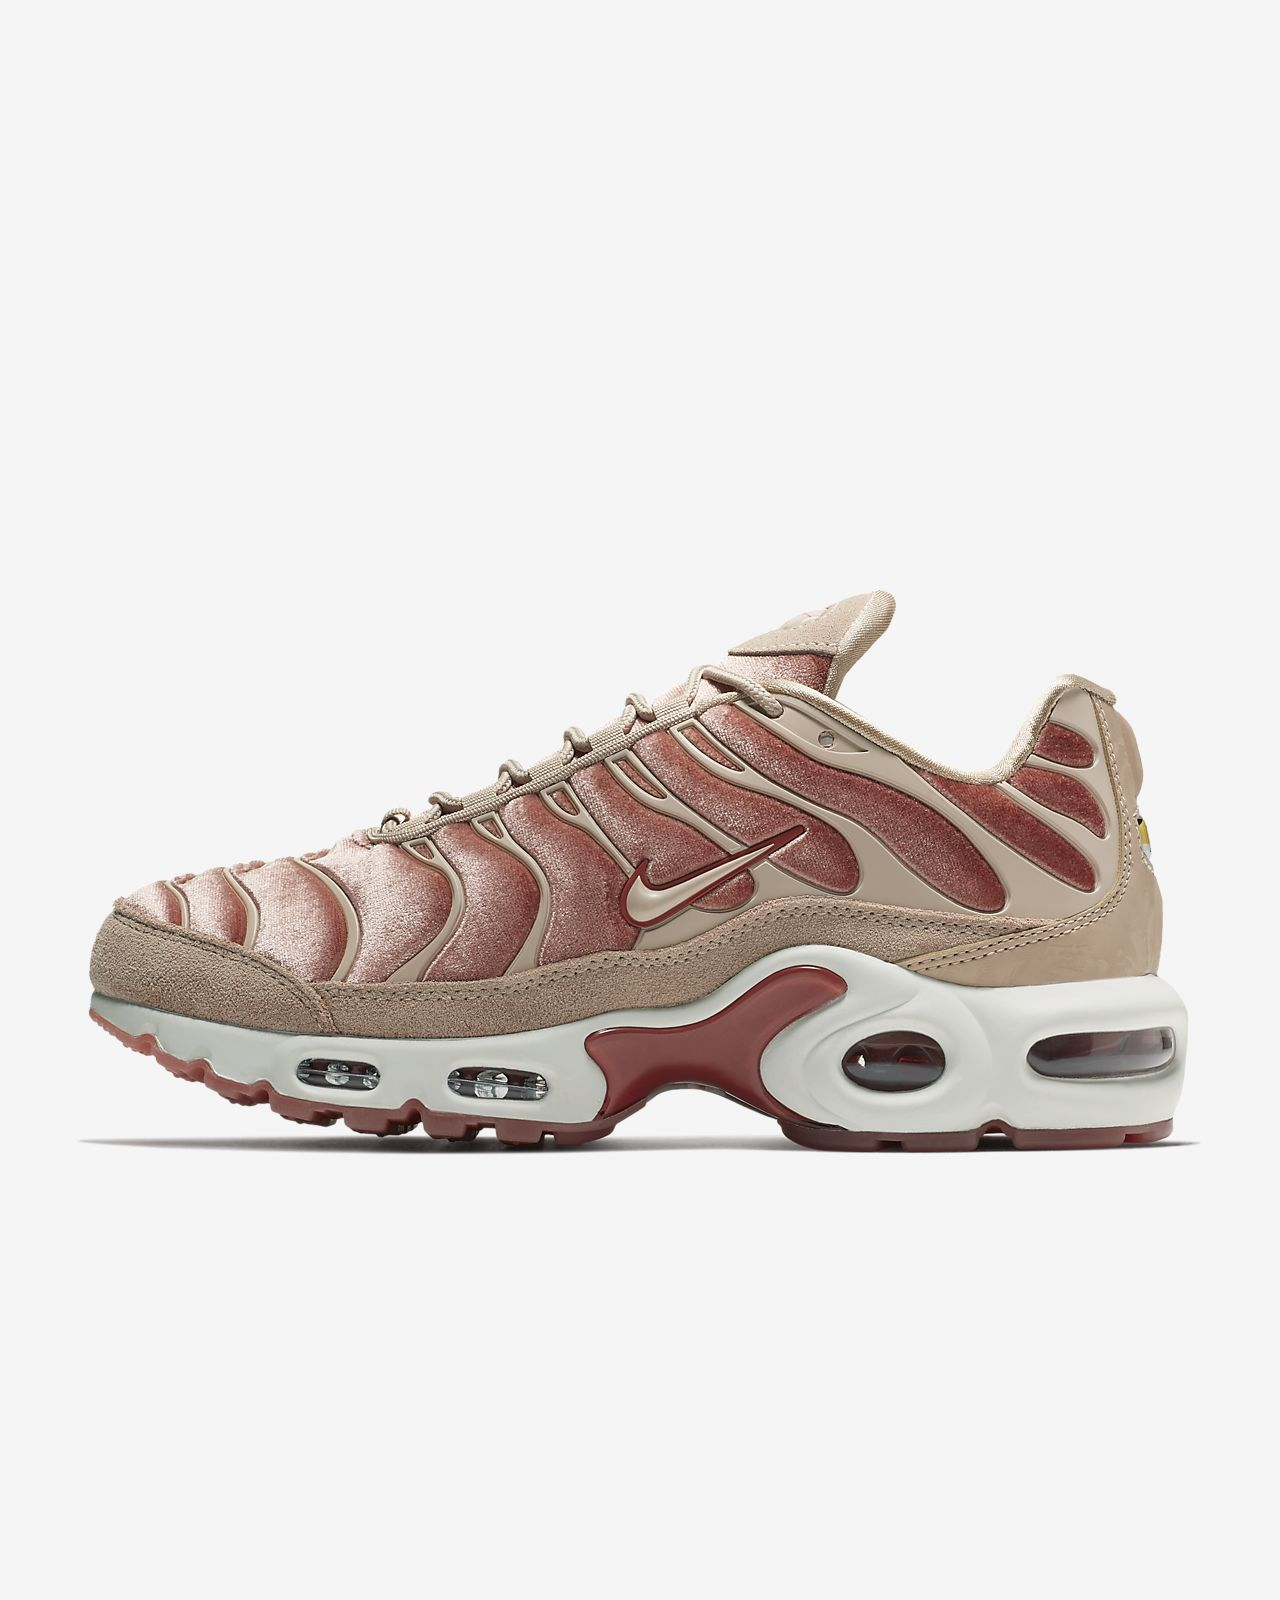 Nike Wmns Air Max Plus Lxx